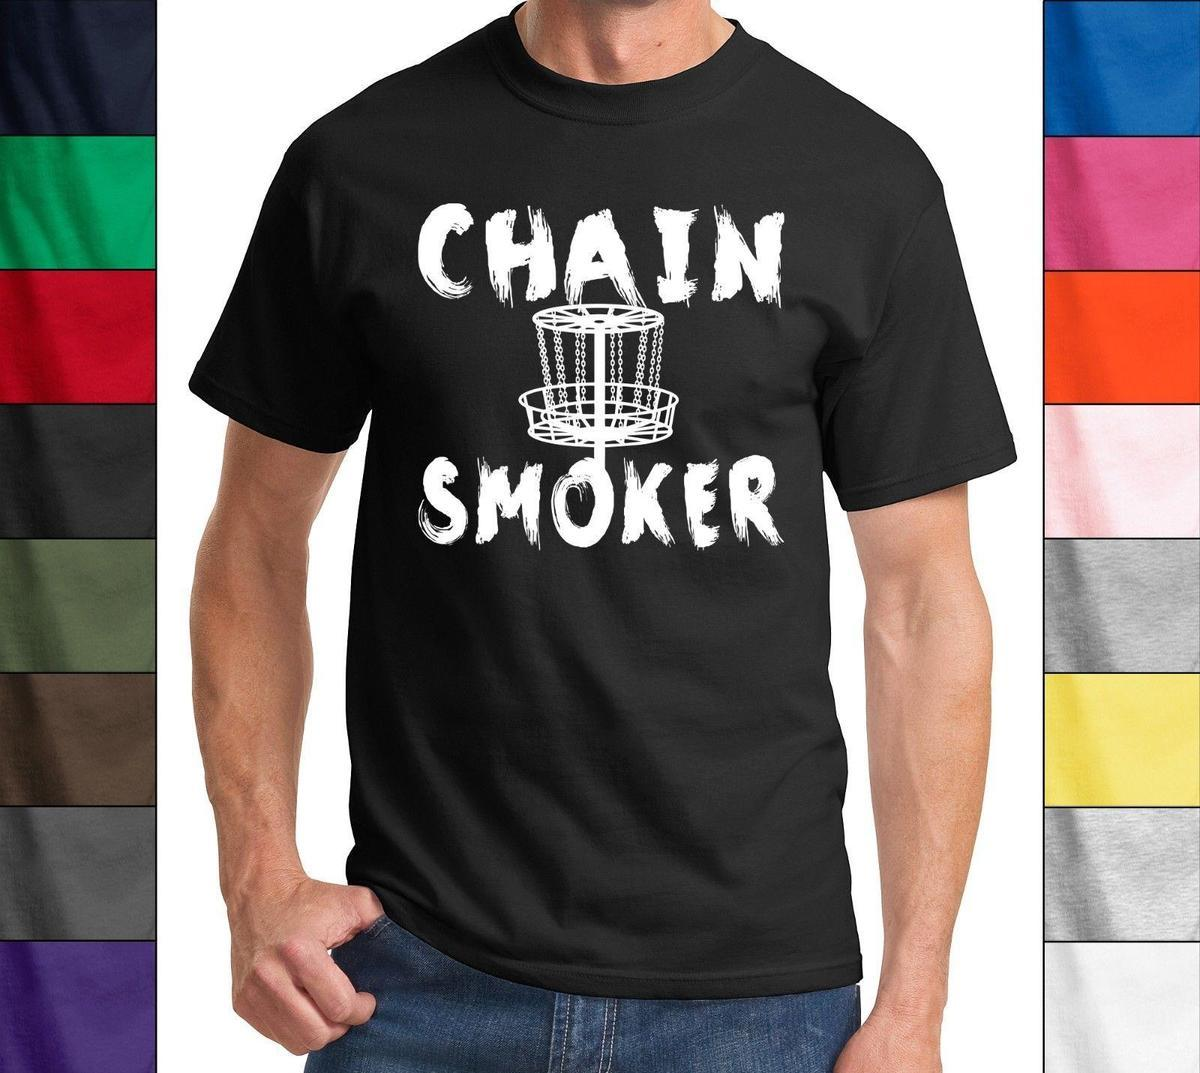 Chain Smoker Funny T Shirt Funny Disc Golf Tee Smoker Sports T Shirt